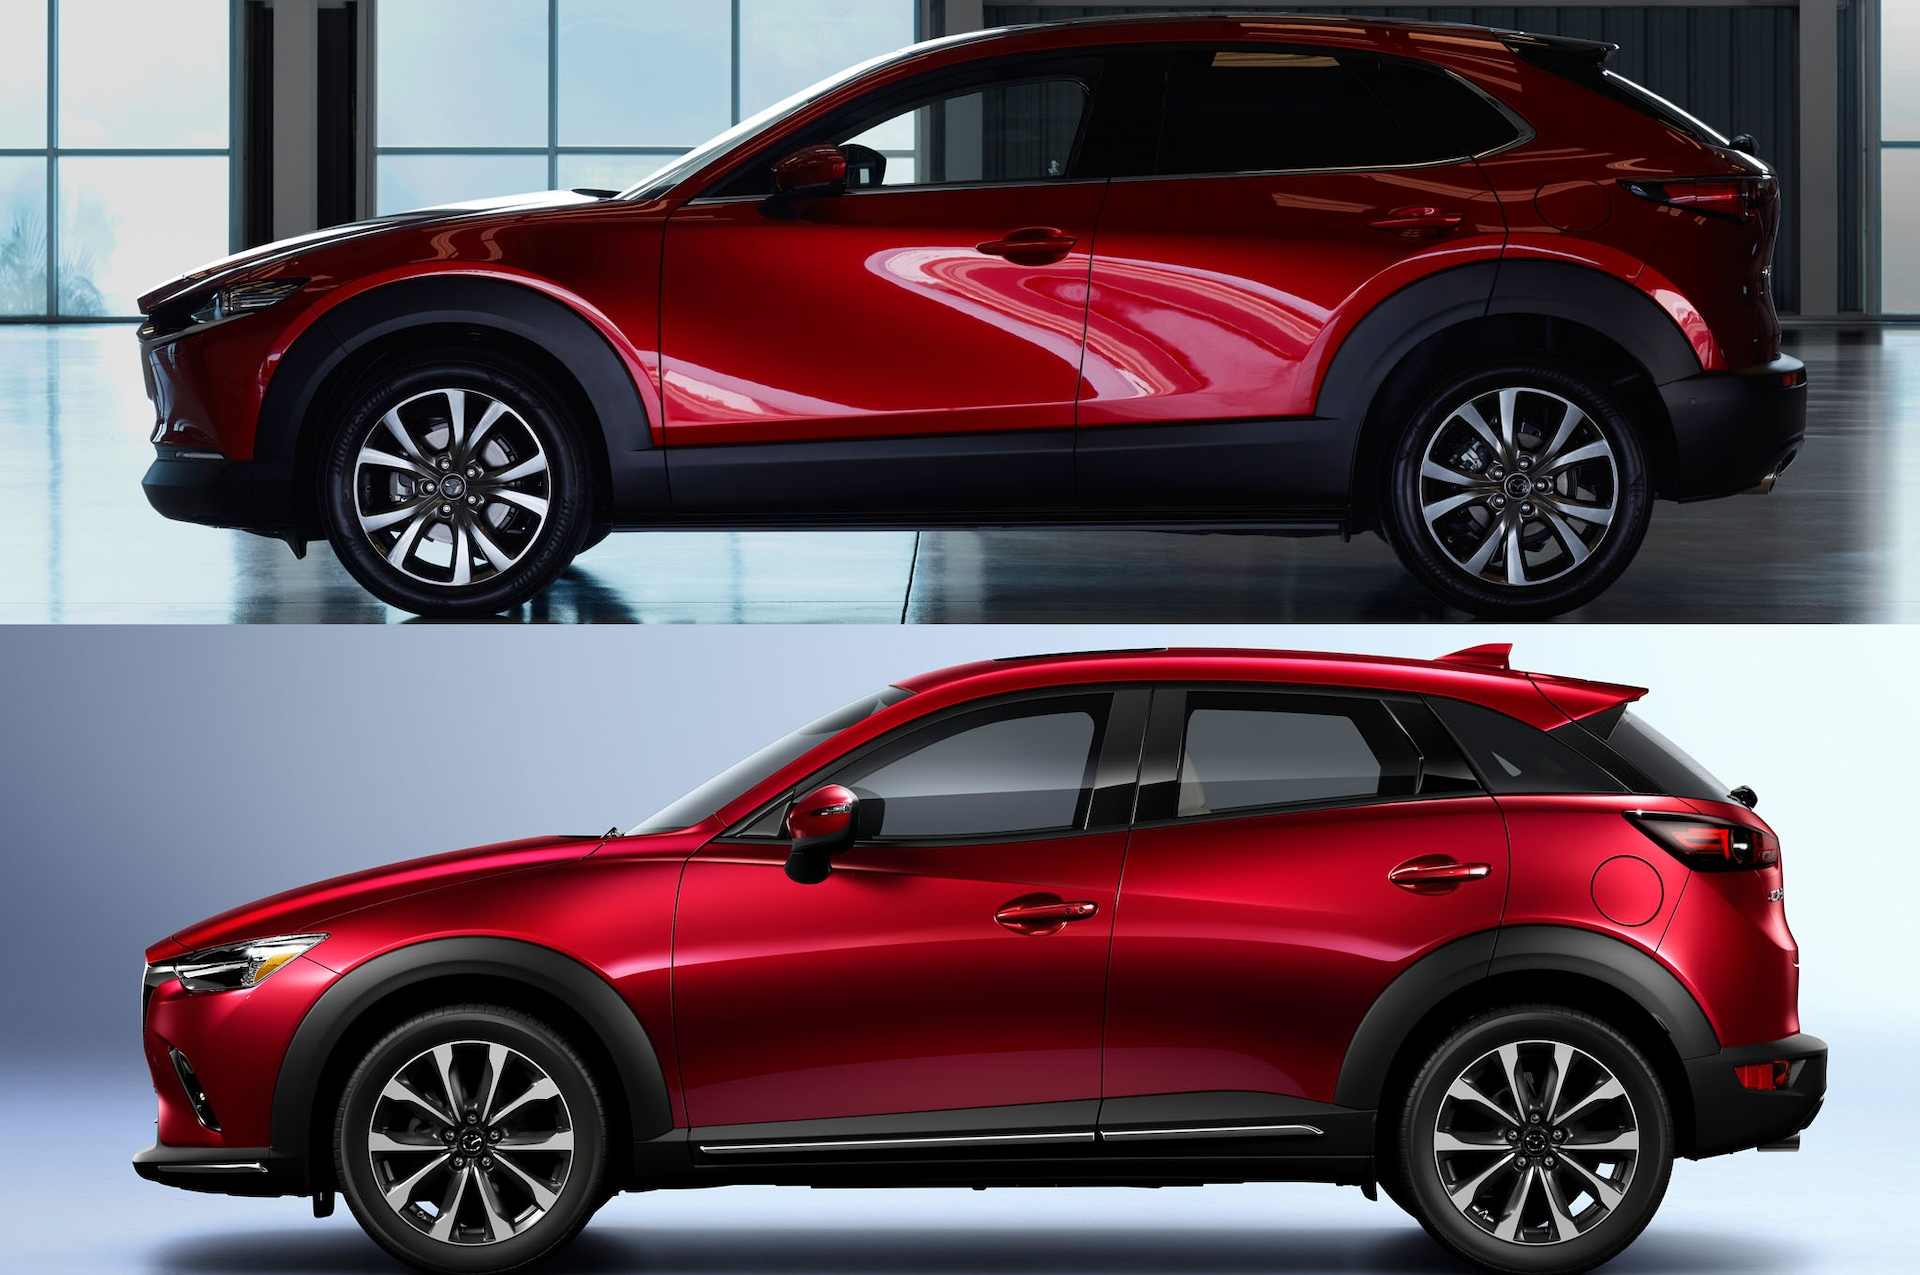 / Vs Refreshing Or Revolting Mazda Cx 30 Vs Mazda Cx 3 Motortrend